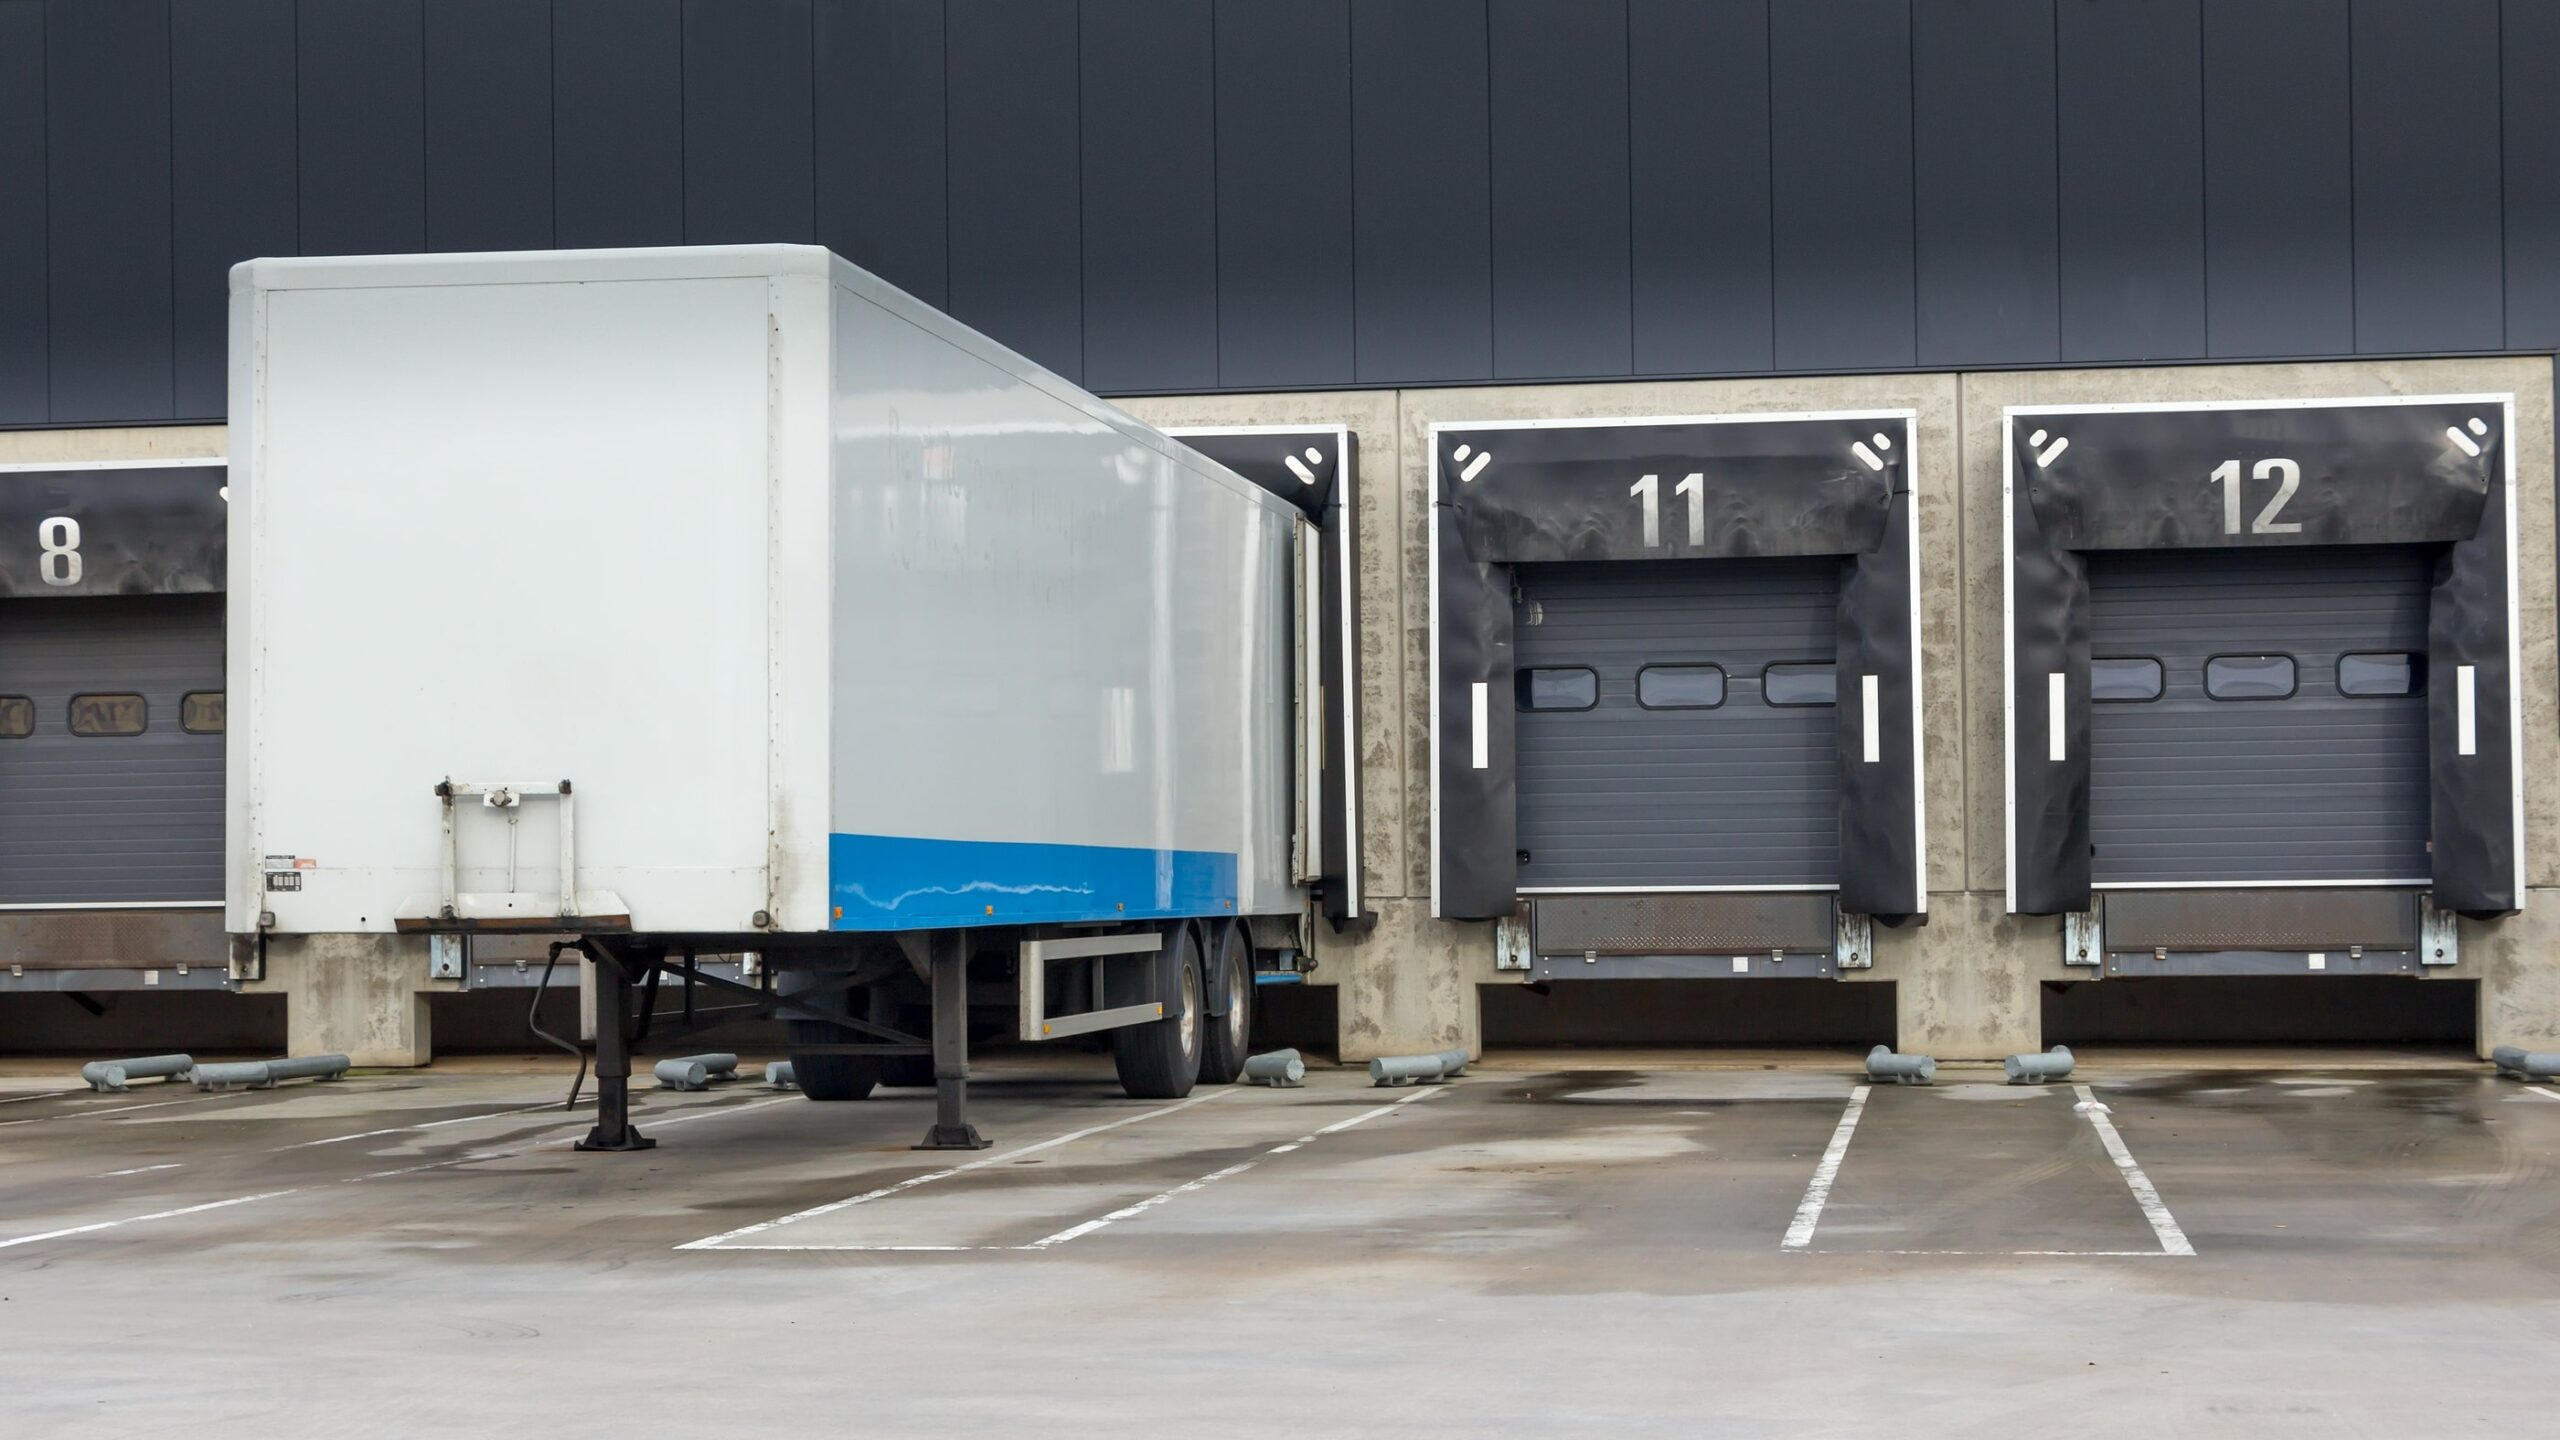 Storage trailers at a loading station.